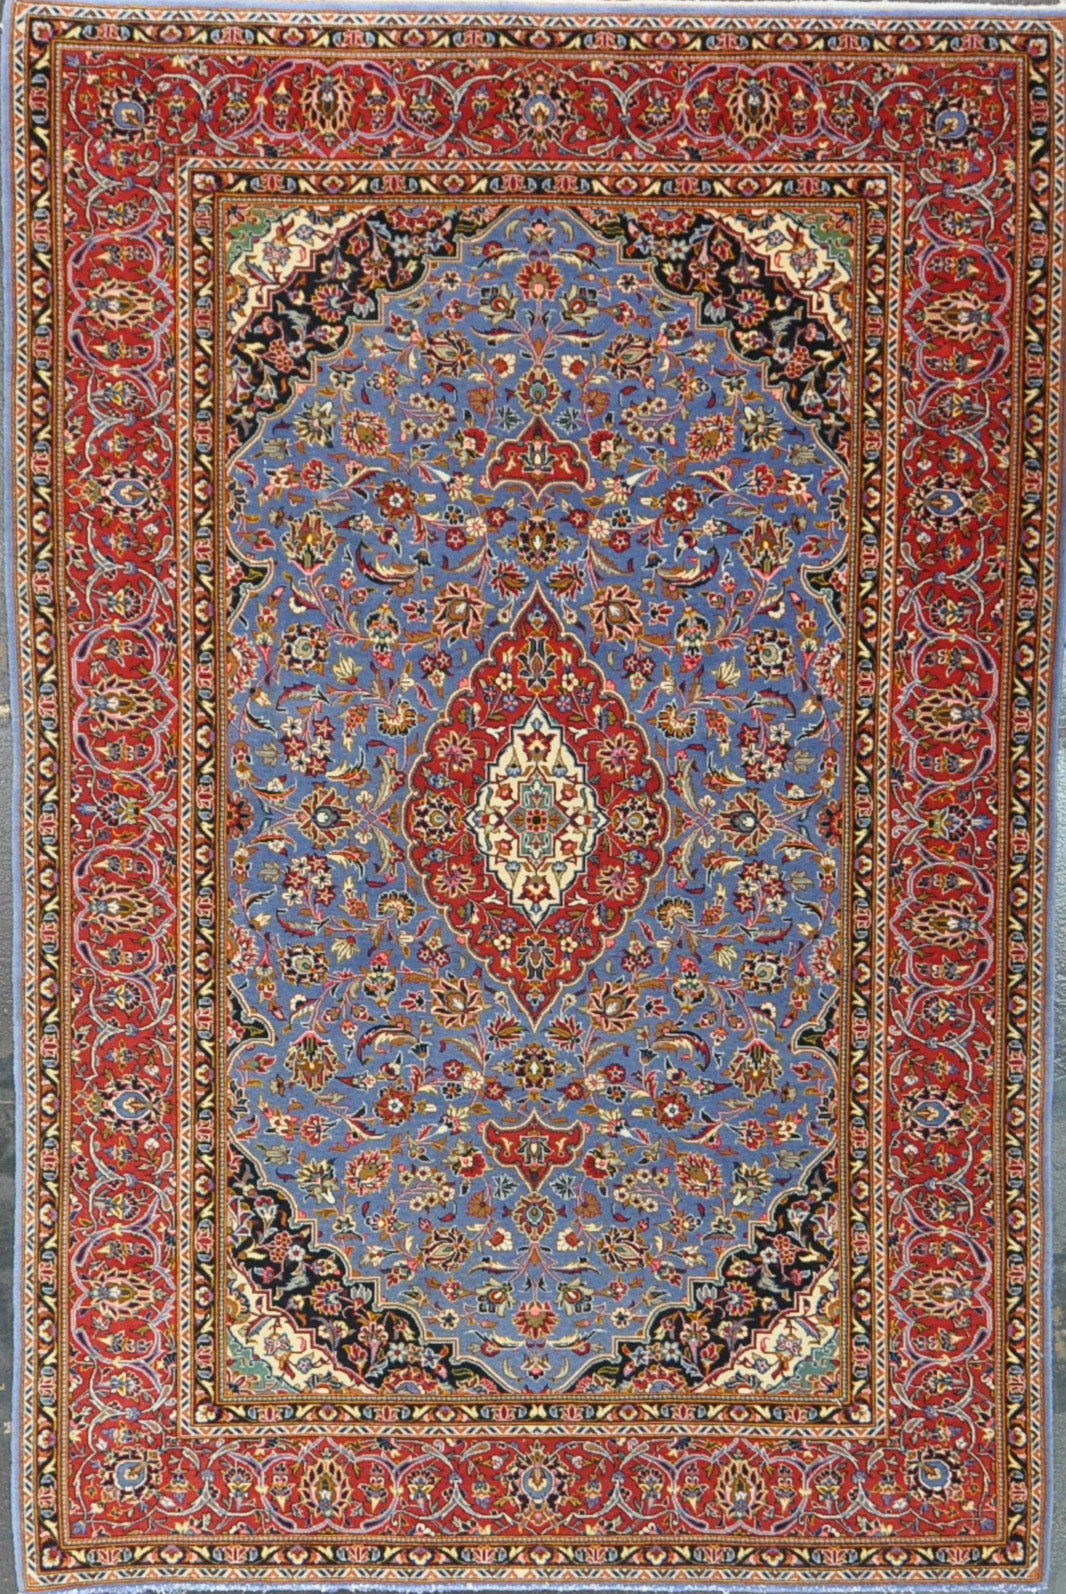 Rug Id: 23971 Persian kashan 4.8x7.0 Sold